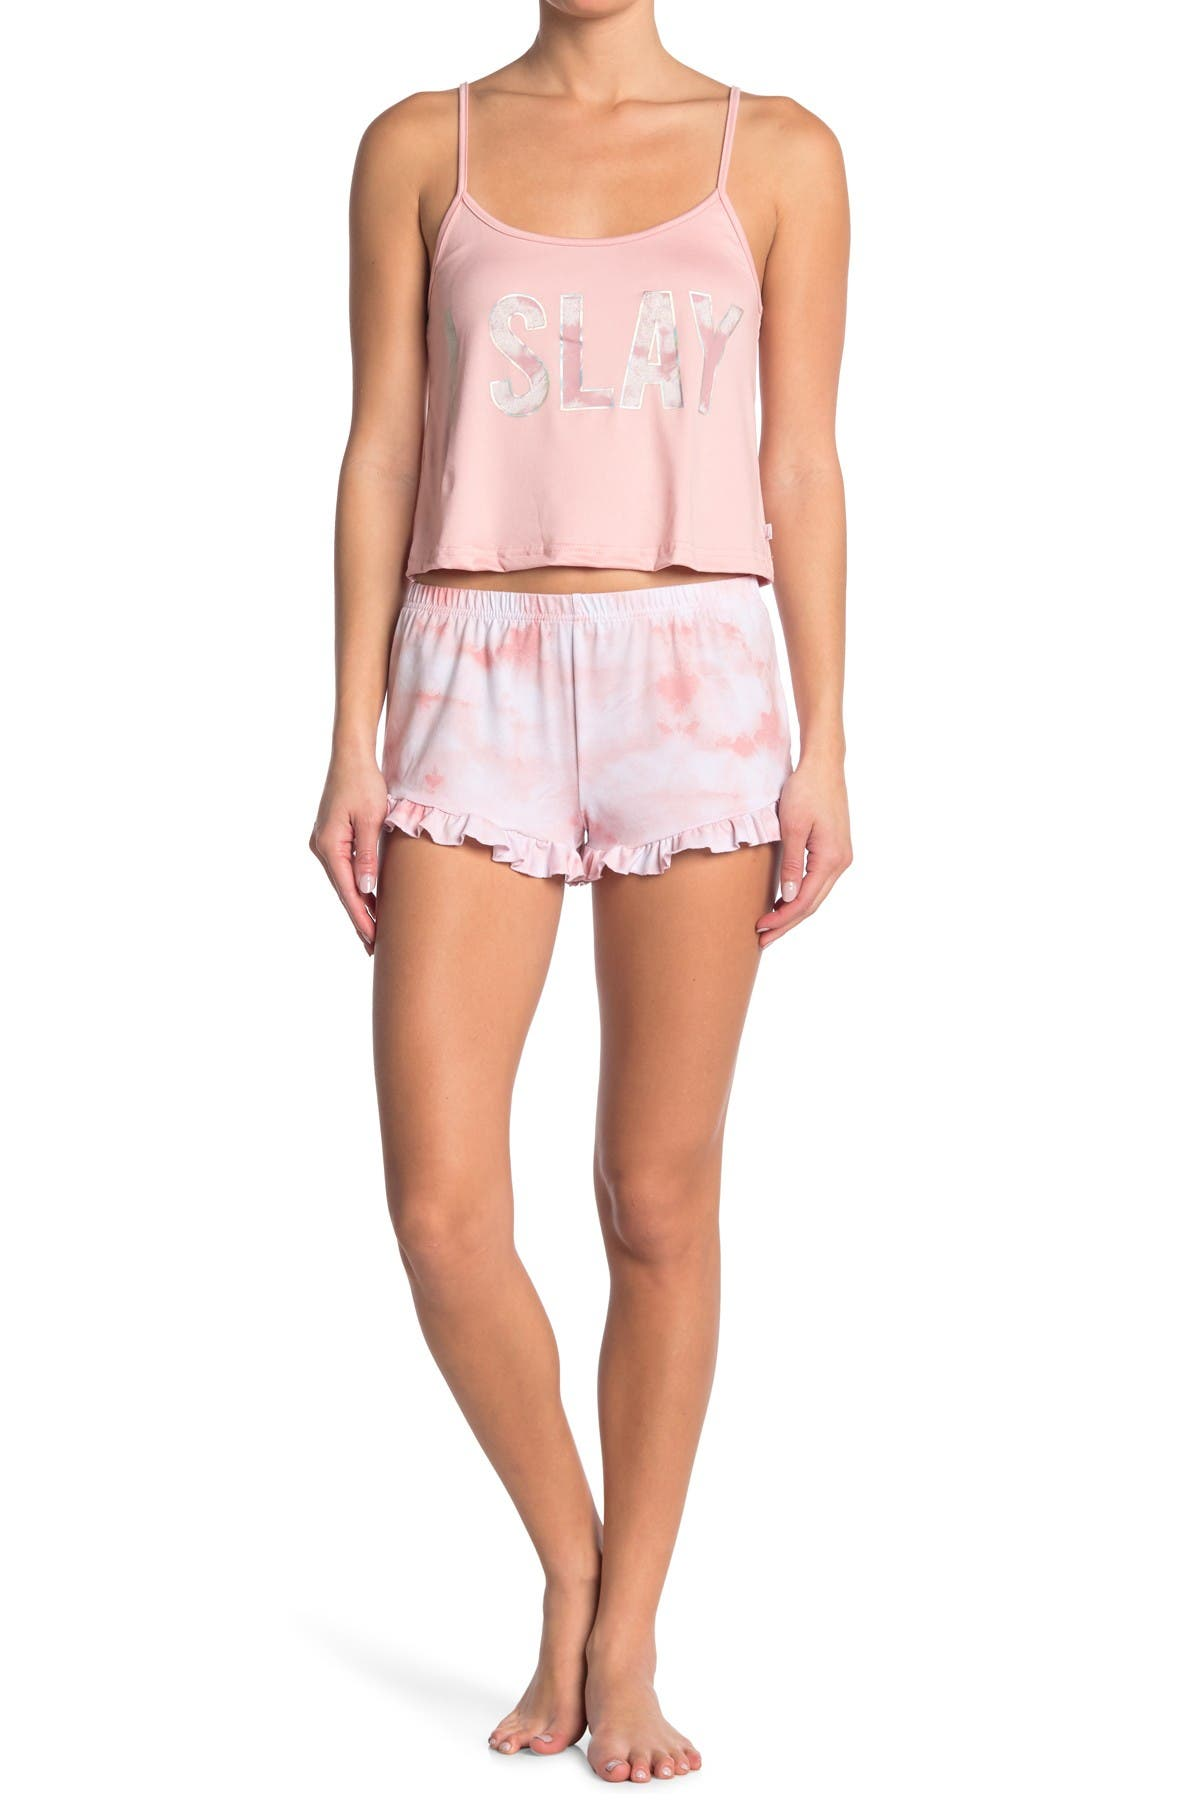 Image of FRENCH AFFAIR I Slay Camisole & Shorts Pajama 2-Piece Set